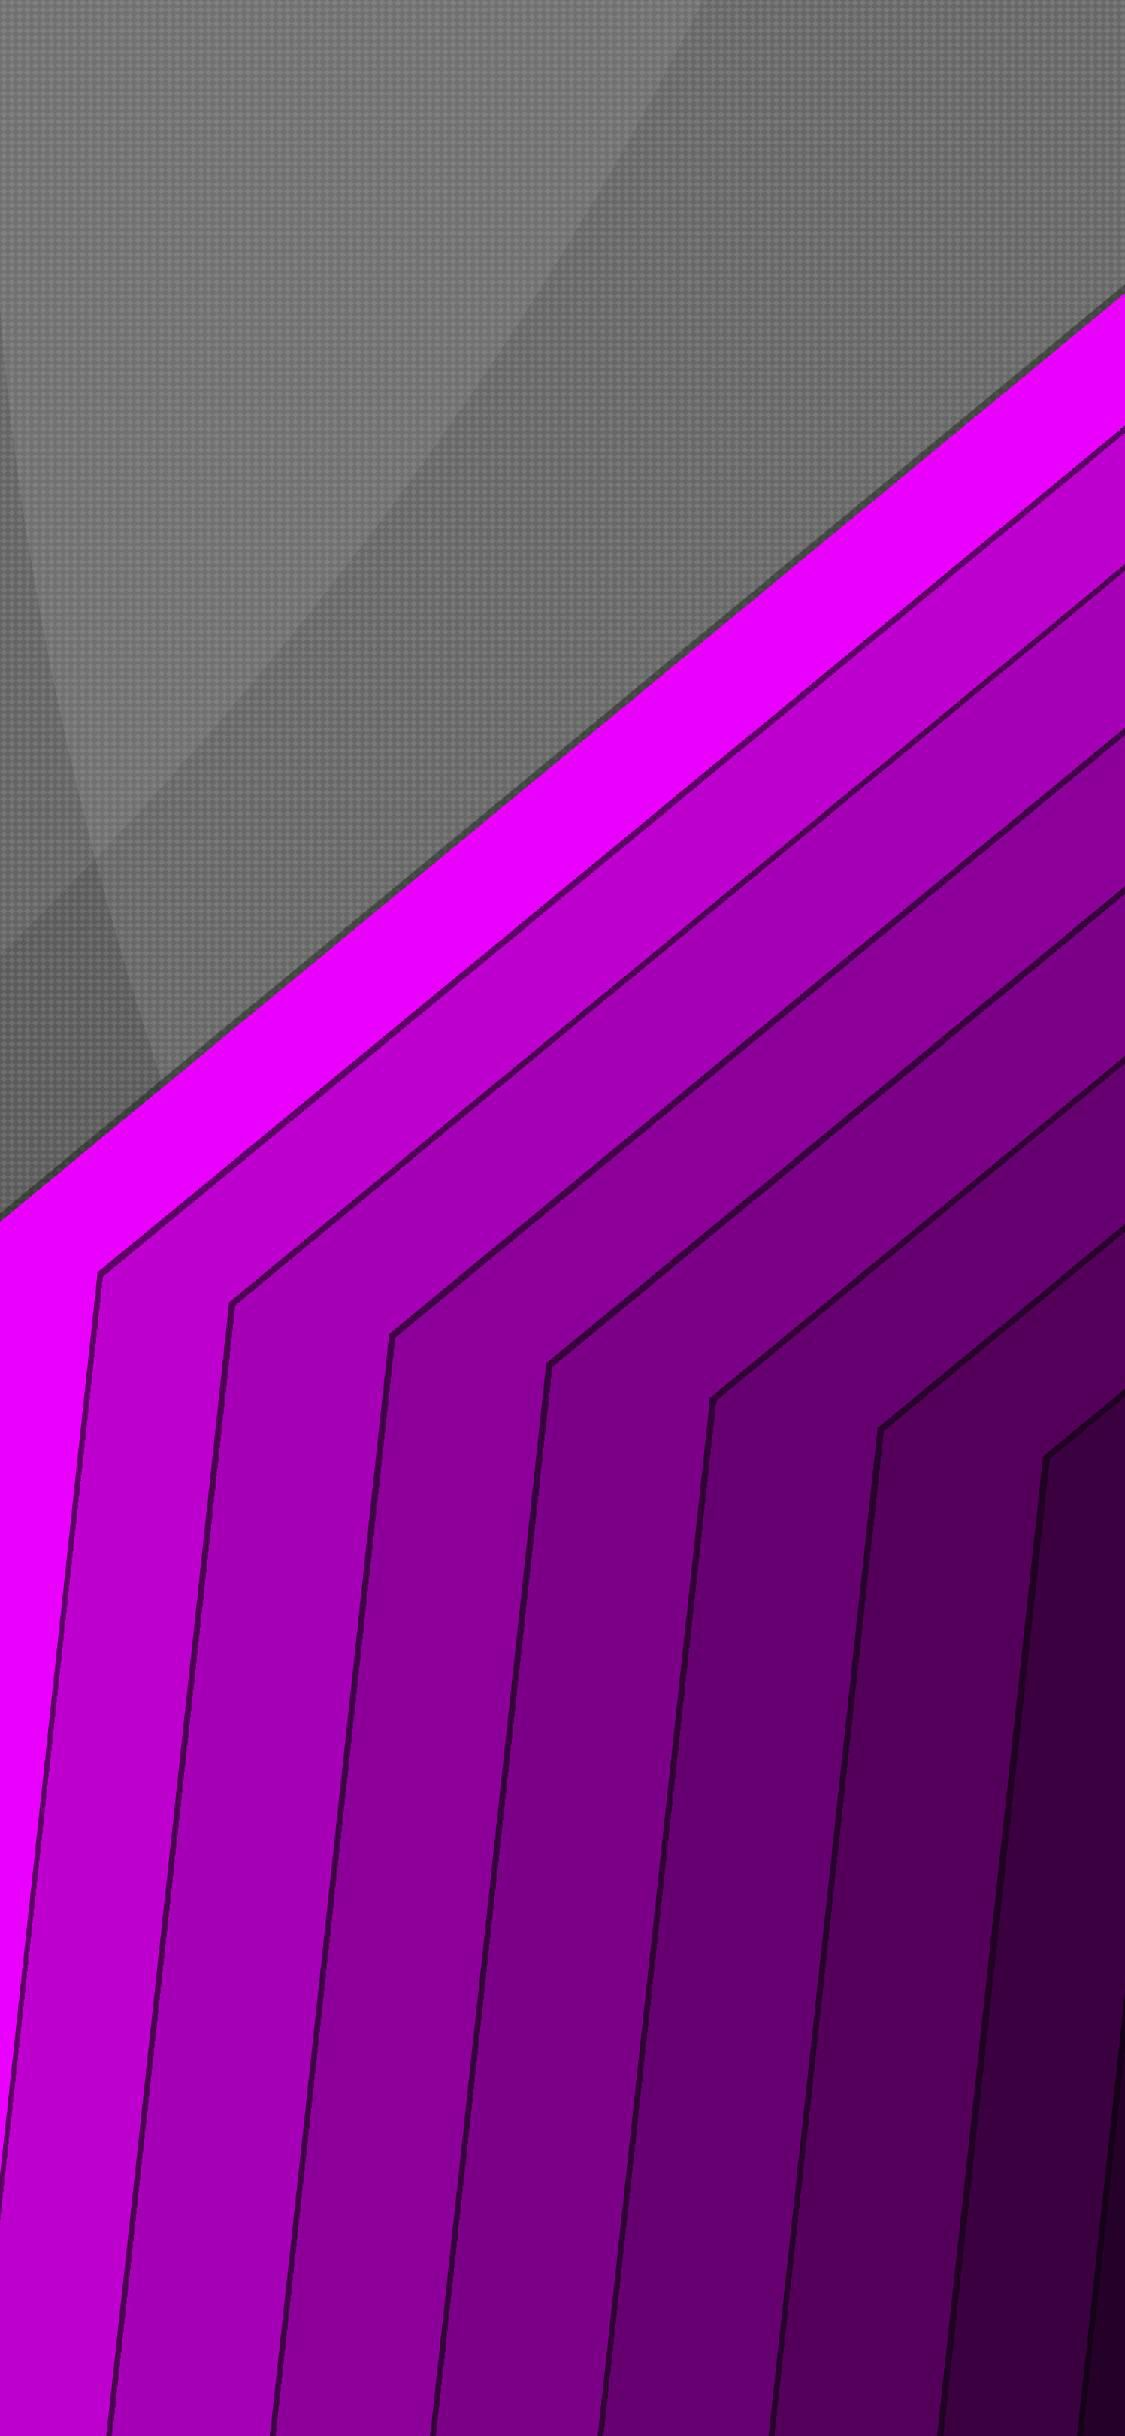 PurpleStripes Lettering, Iphone wallpaper, Download free